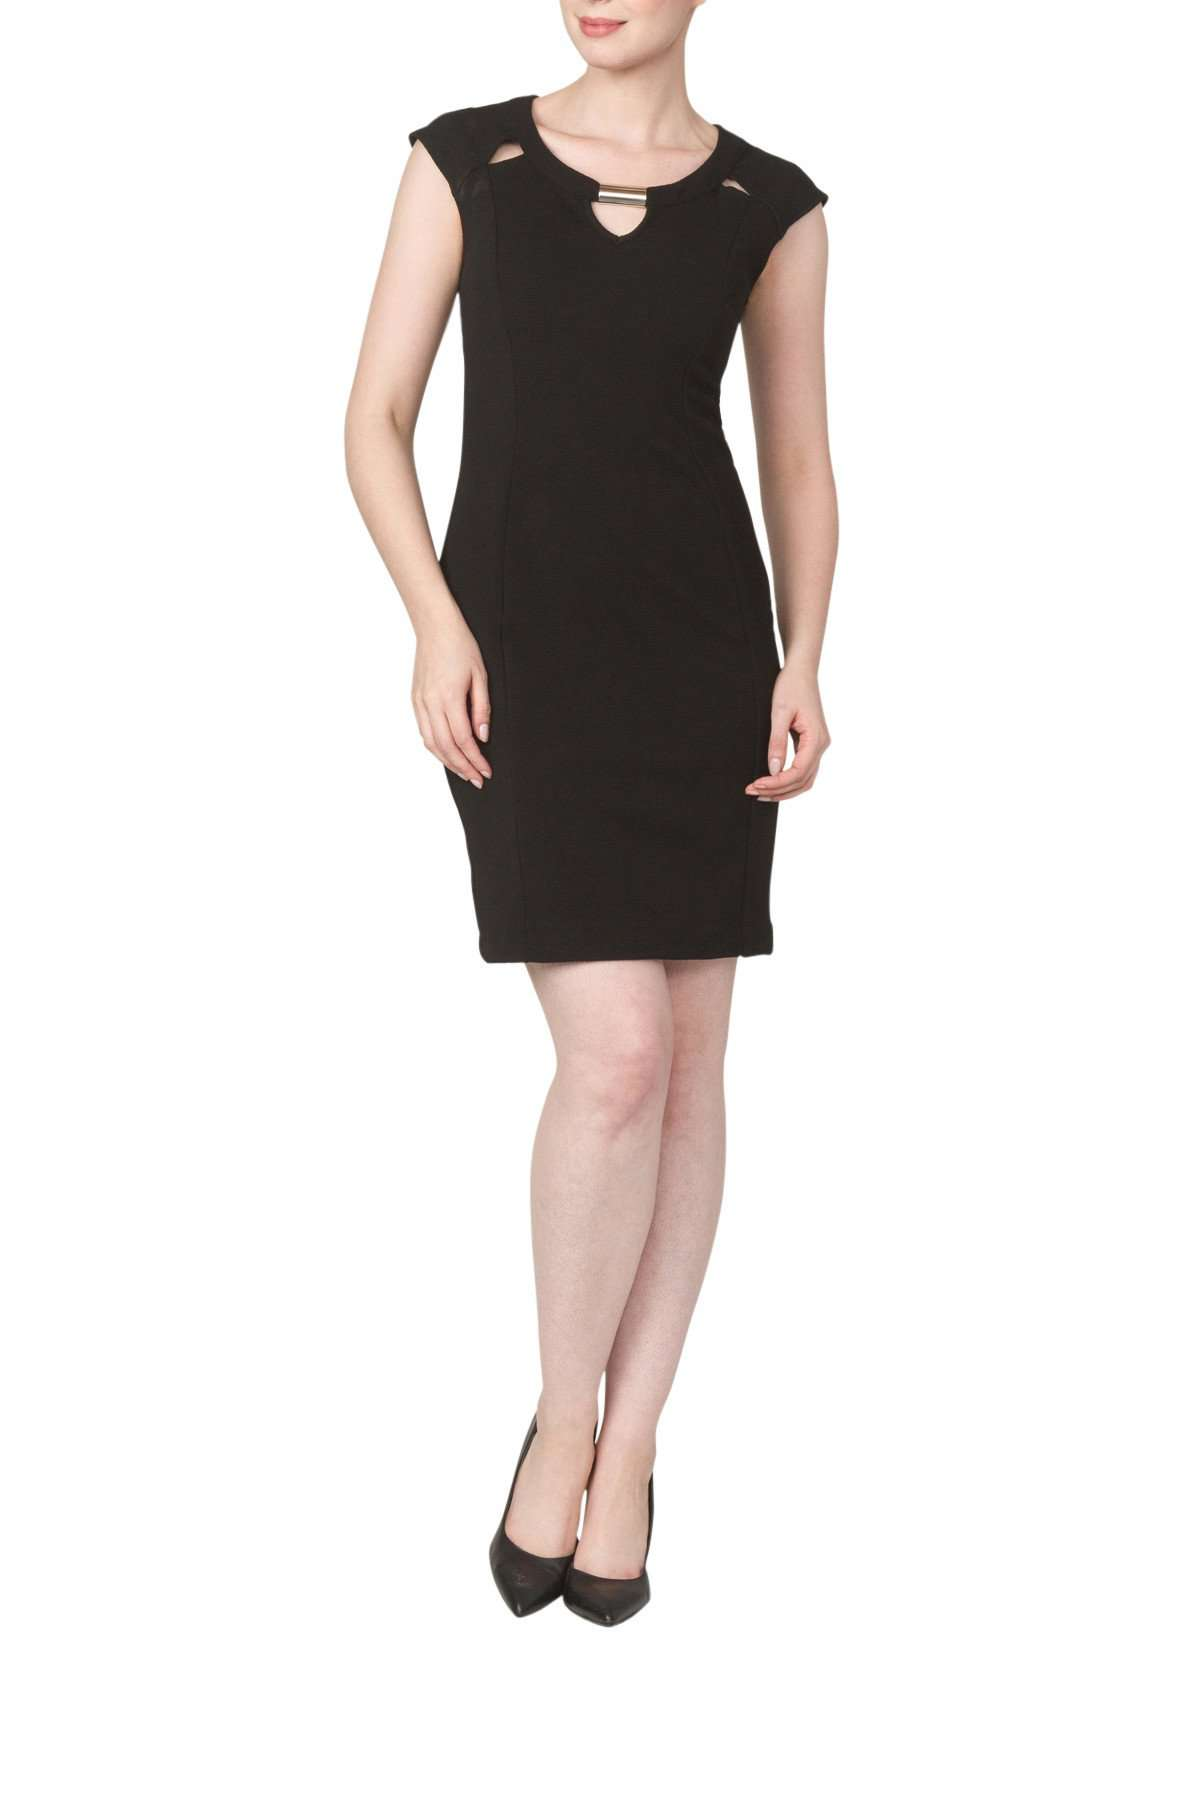 Black Dress Quality Textured Knit Fabric Peekaboo Neckline - Yvonne Marie